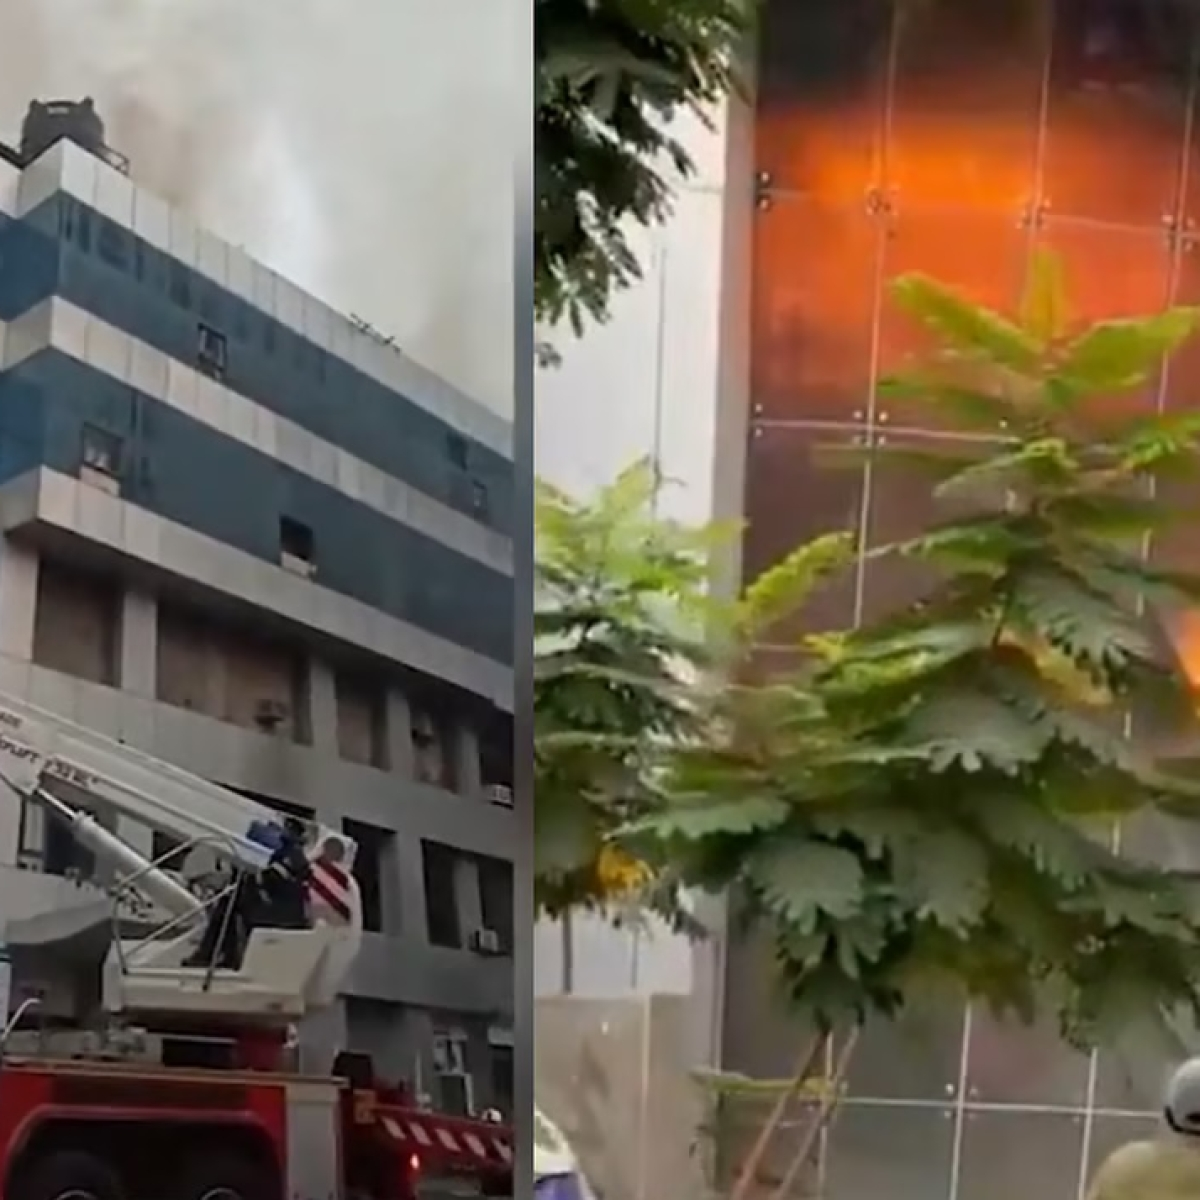 Sunrise Hospital Fire: Bombay HC to hear plea against revocation of provisional OC